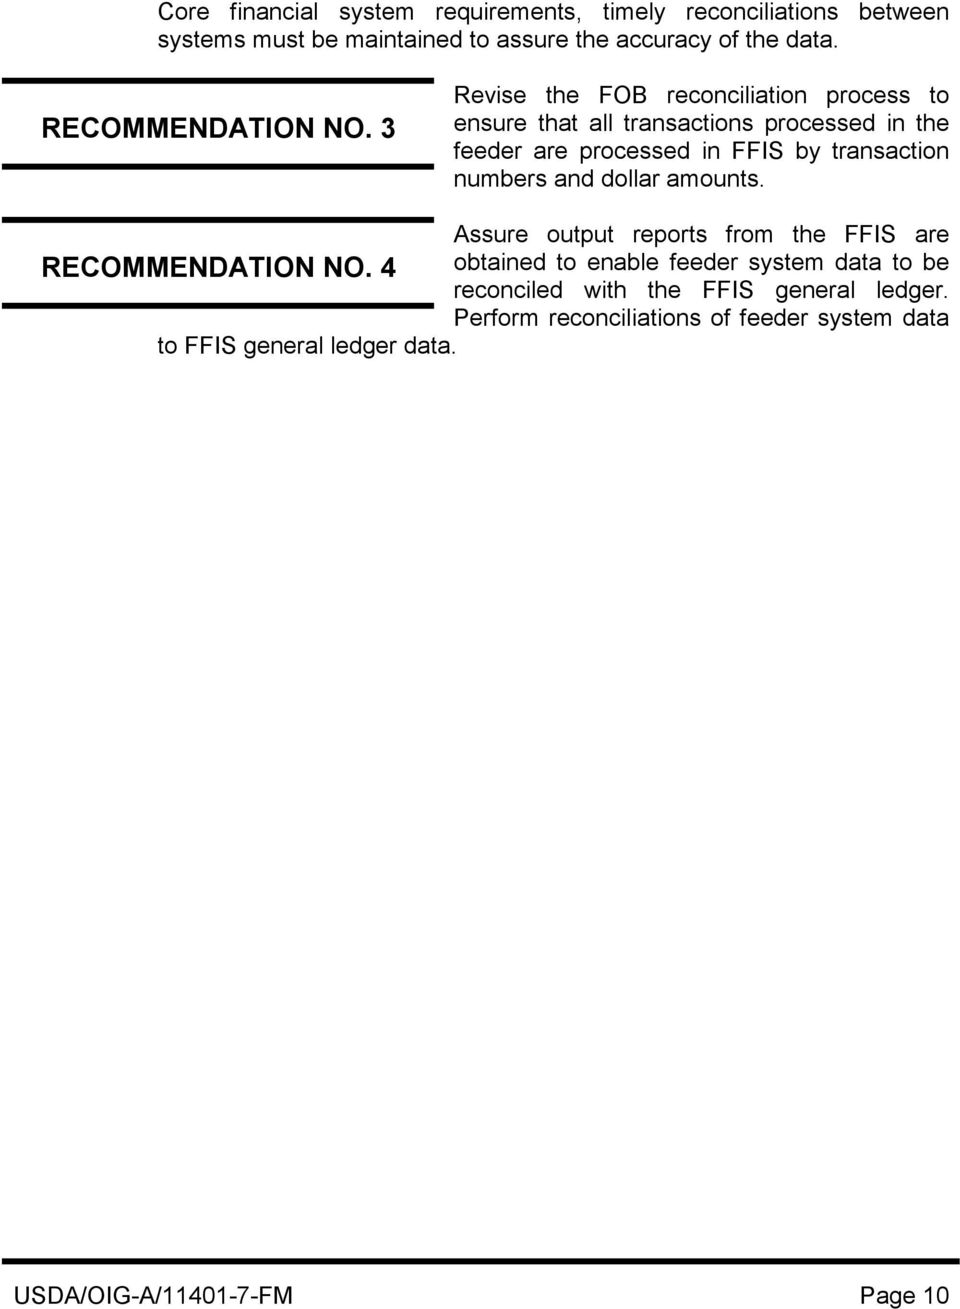 3 Revise the FOB reconciliation process to ensure that all transactions processed in the feeder are processed in FFIS by transaction